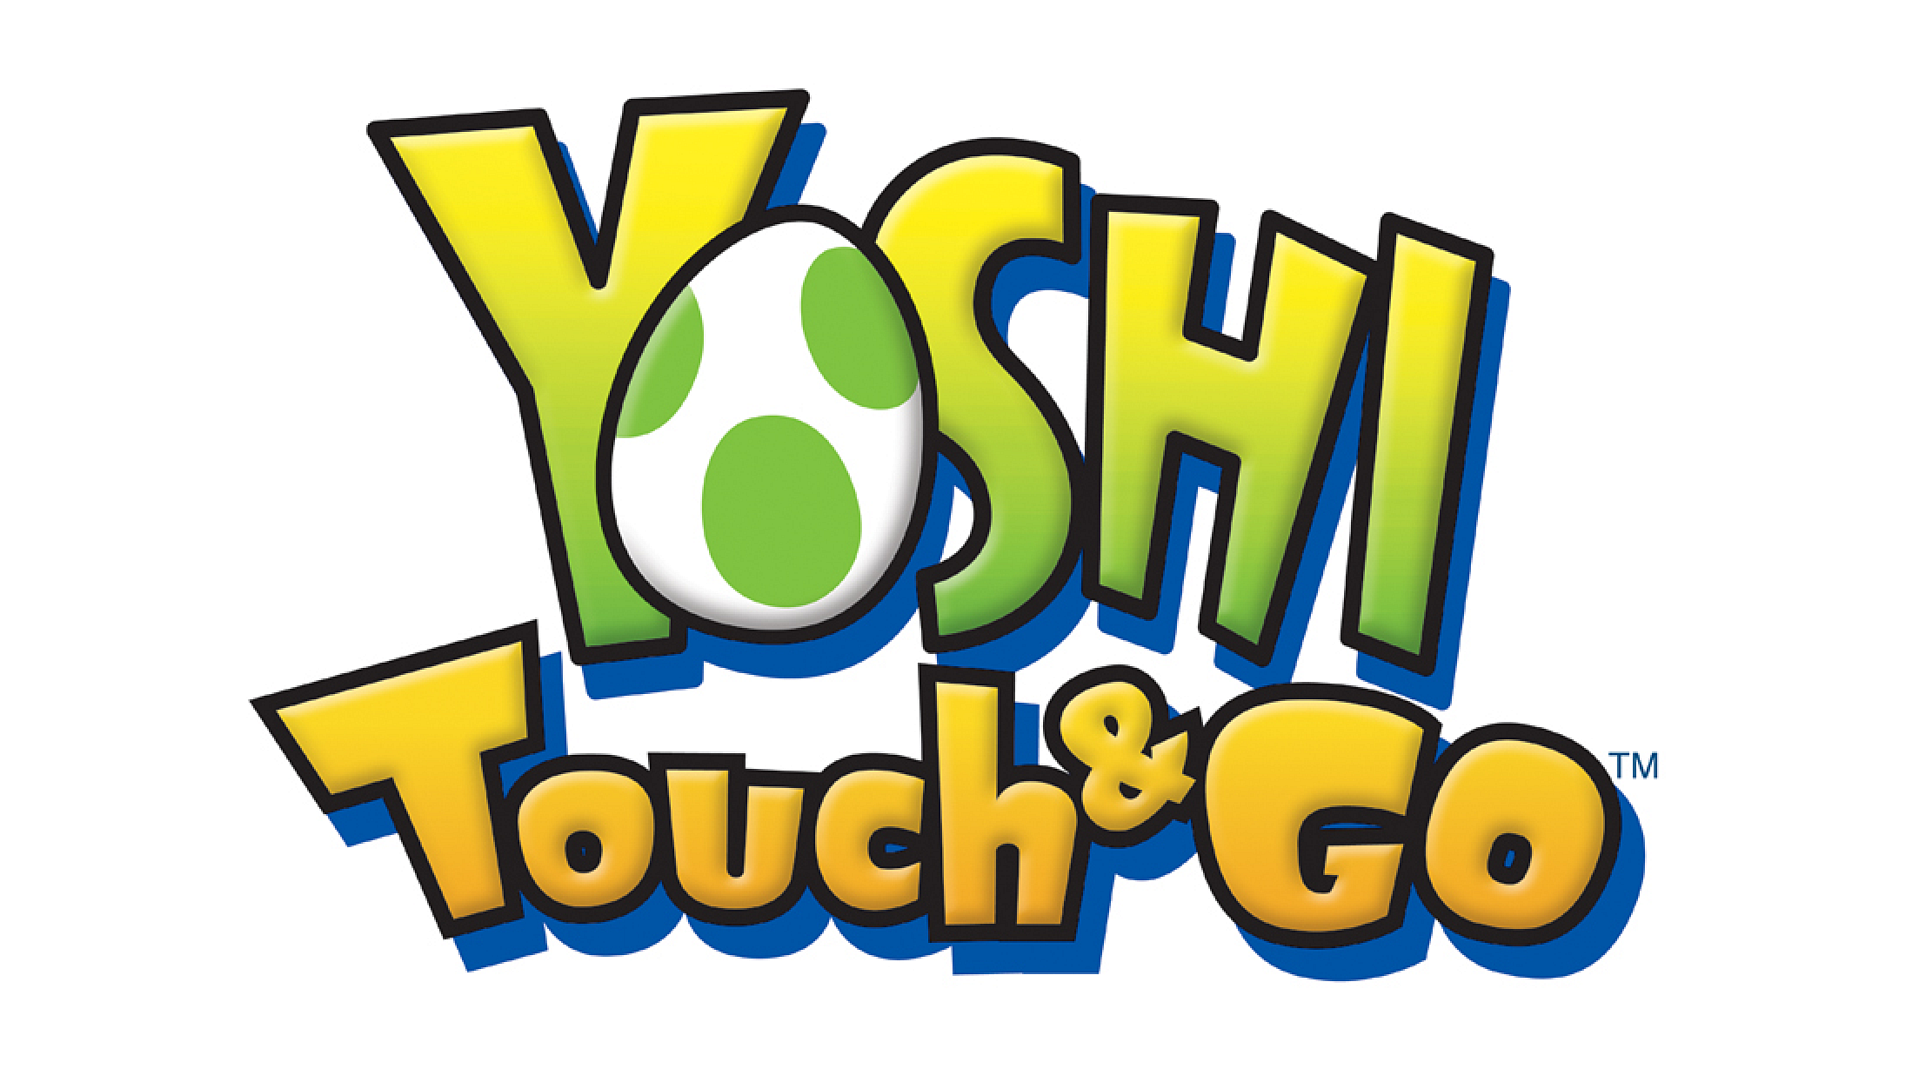 Yoshi Touch And Go Wikipédia